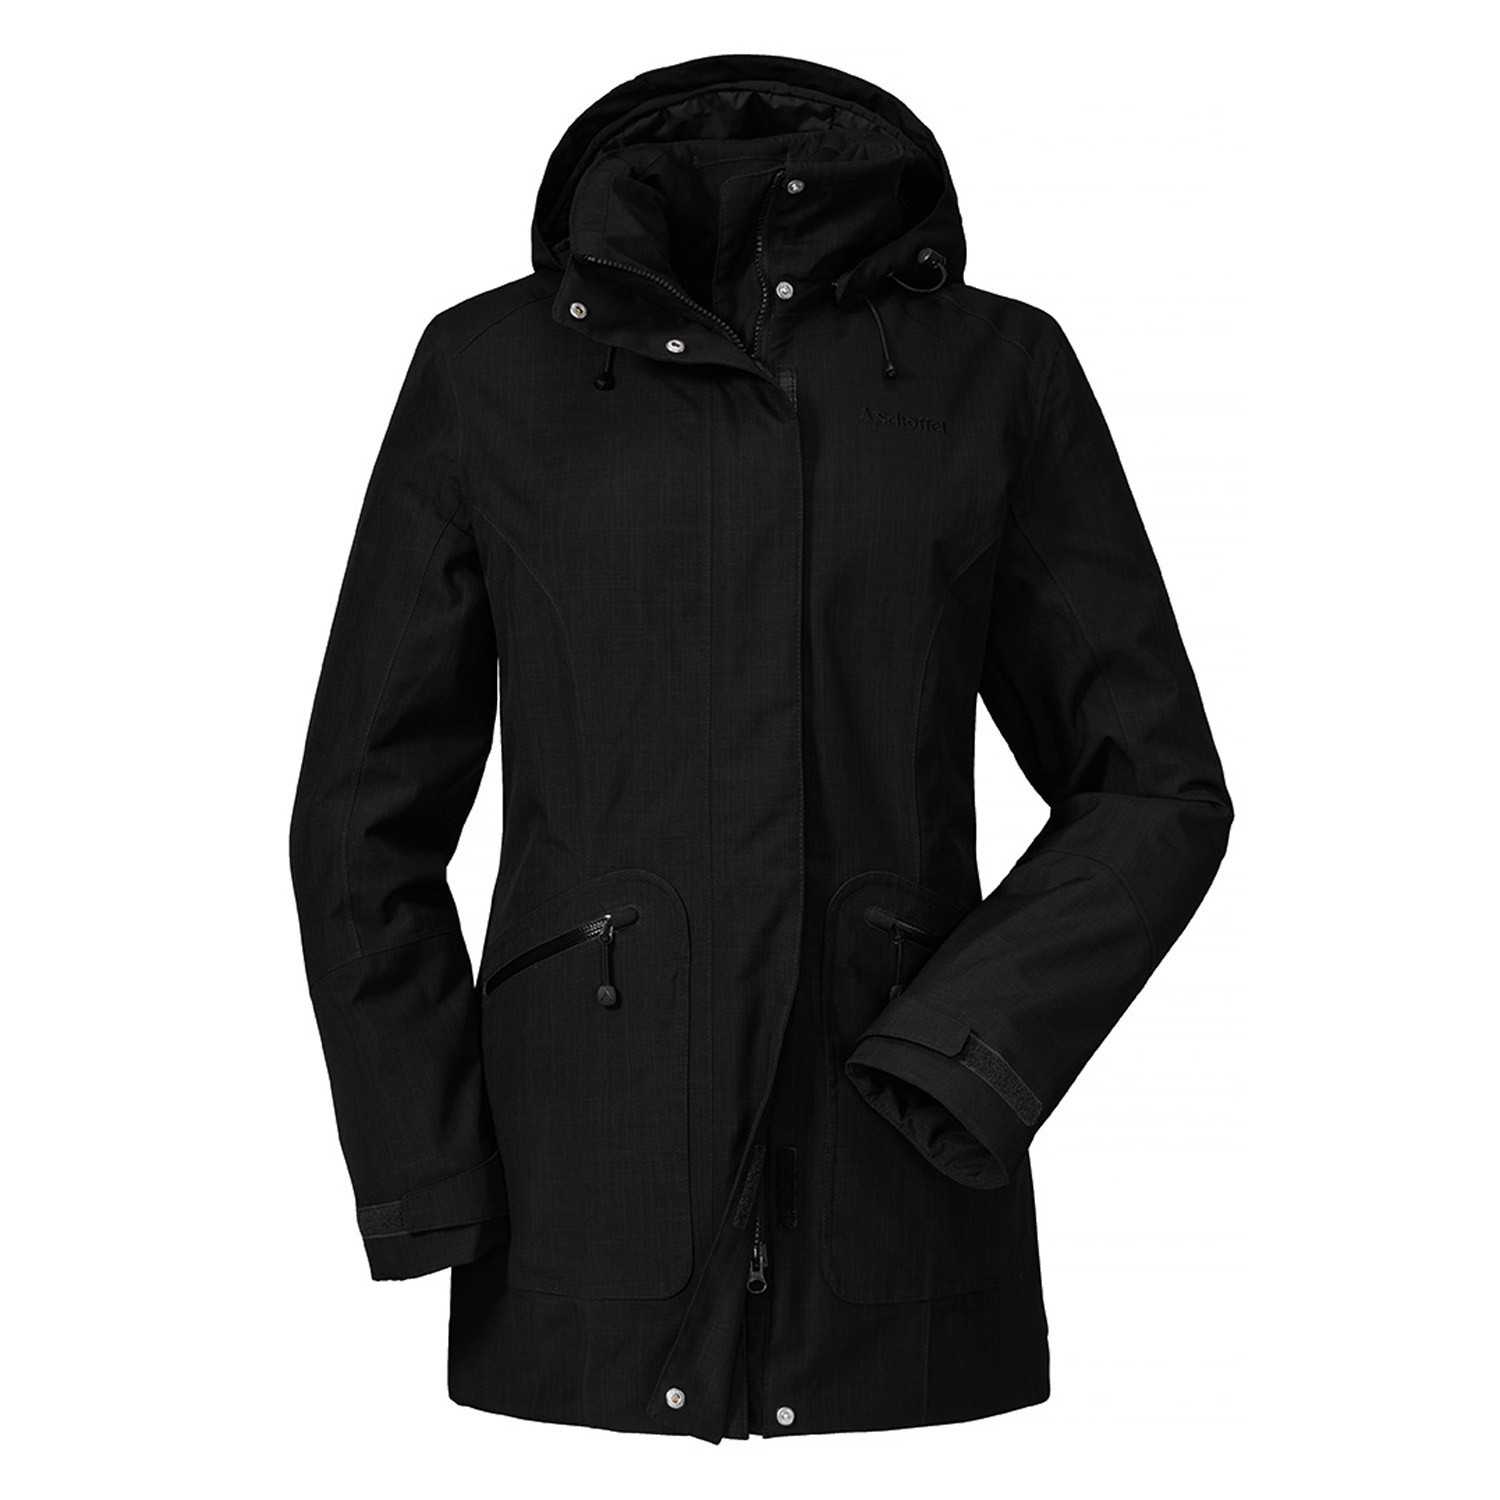 Schöffel Damen Jacke Insulated Jacket Sedona1 11877-9990 42